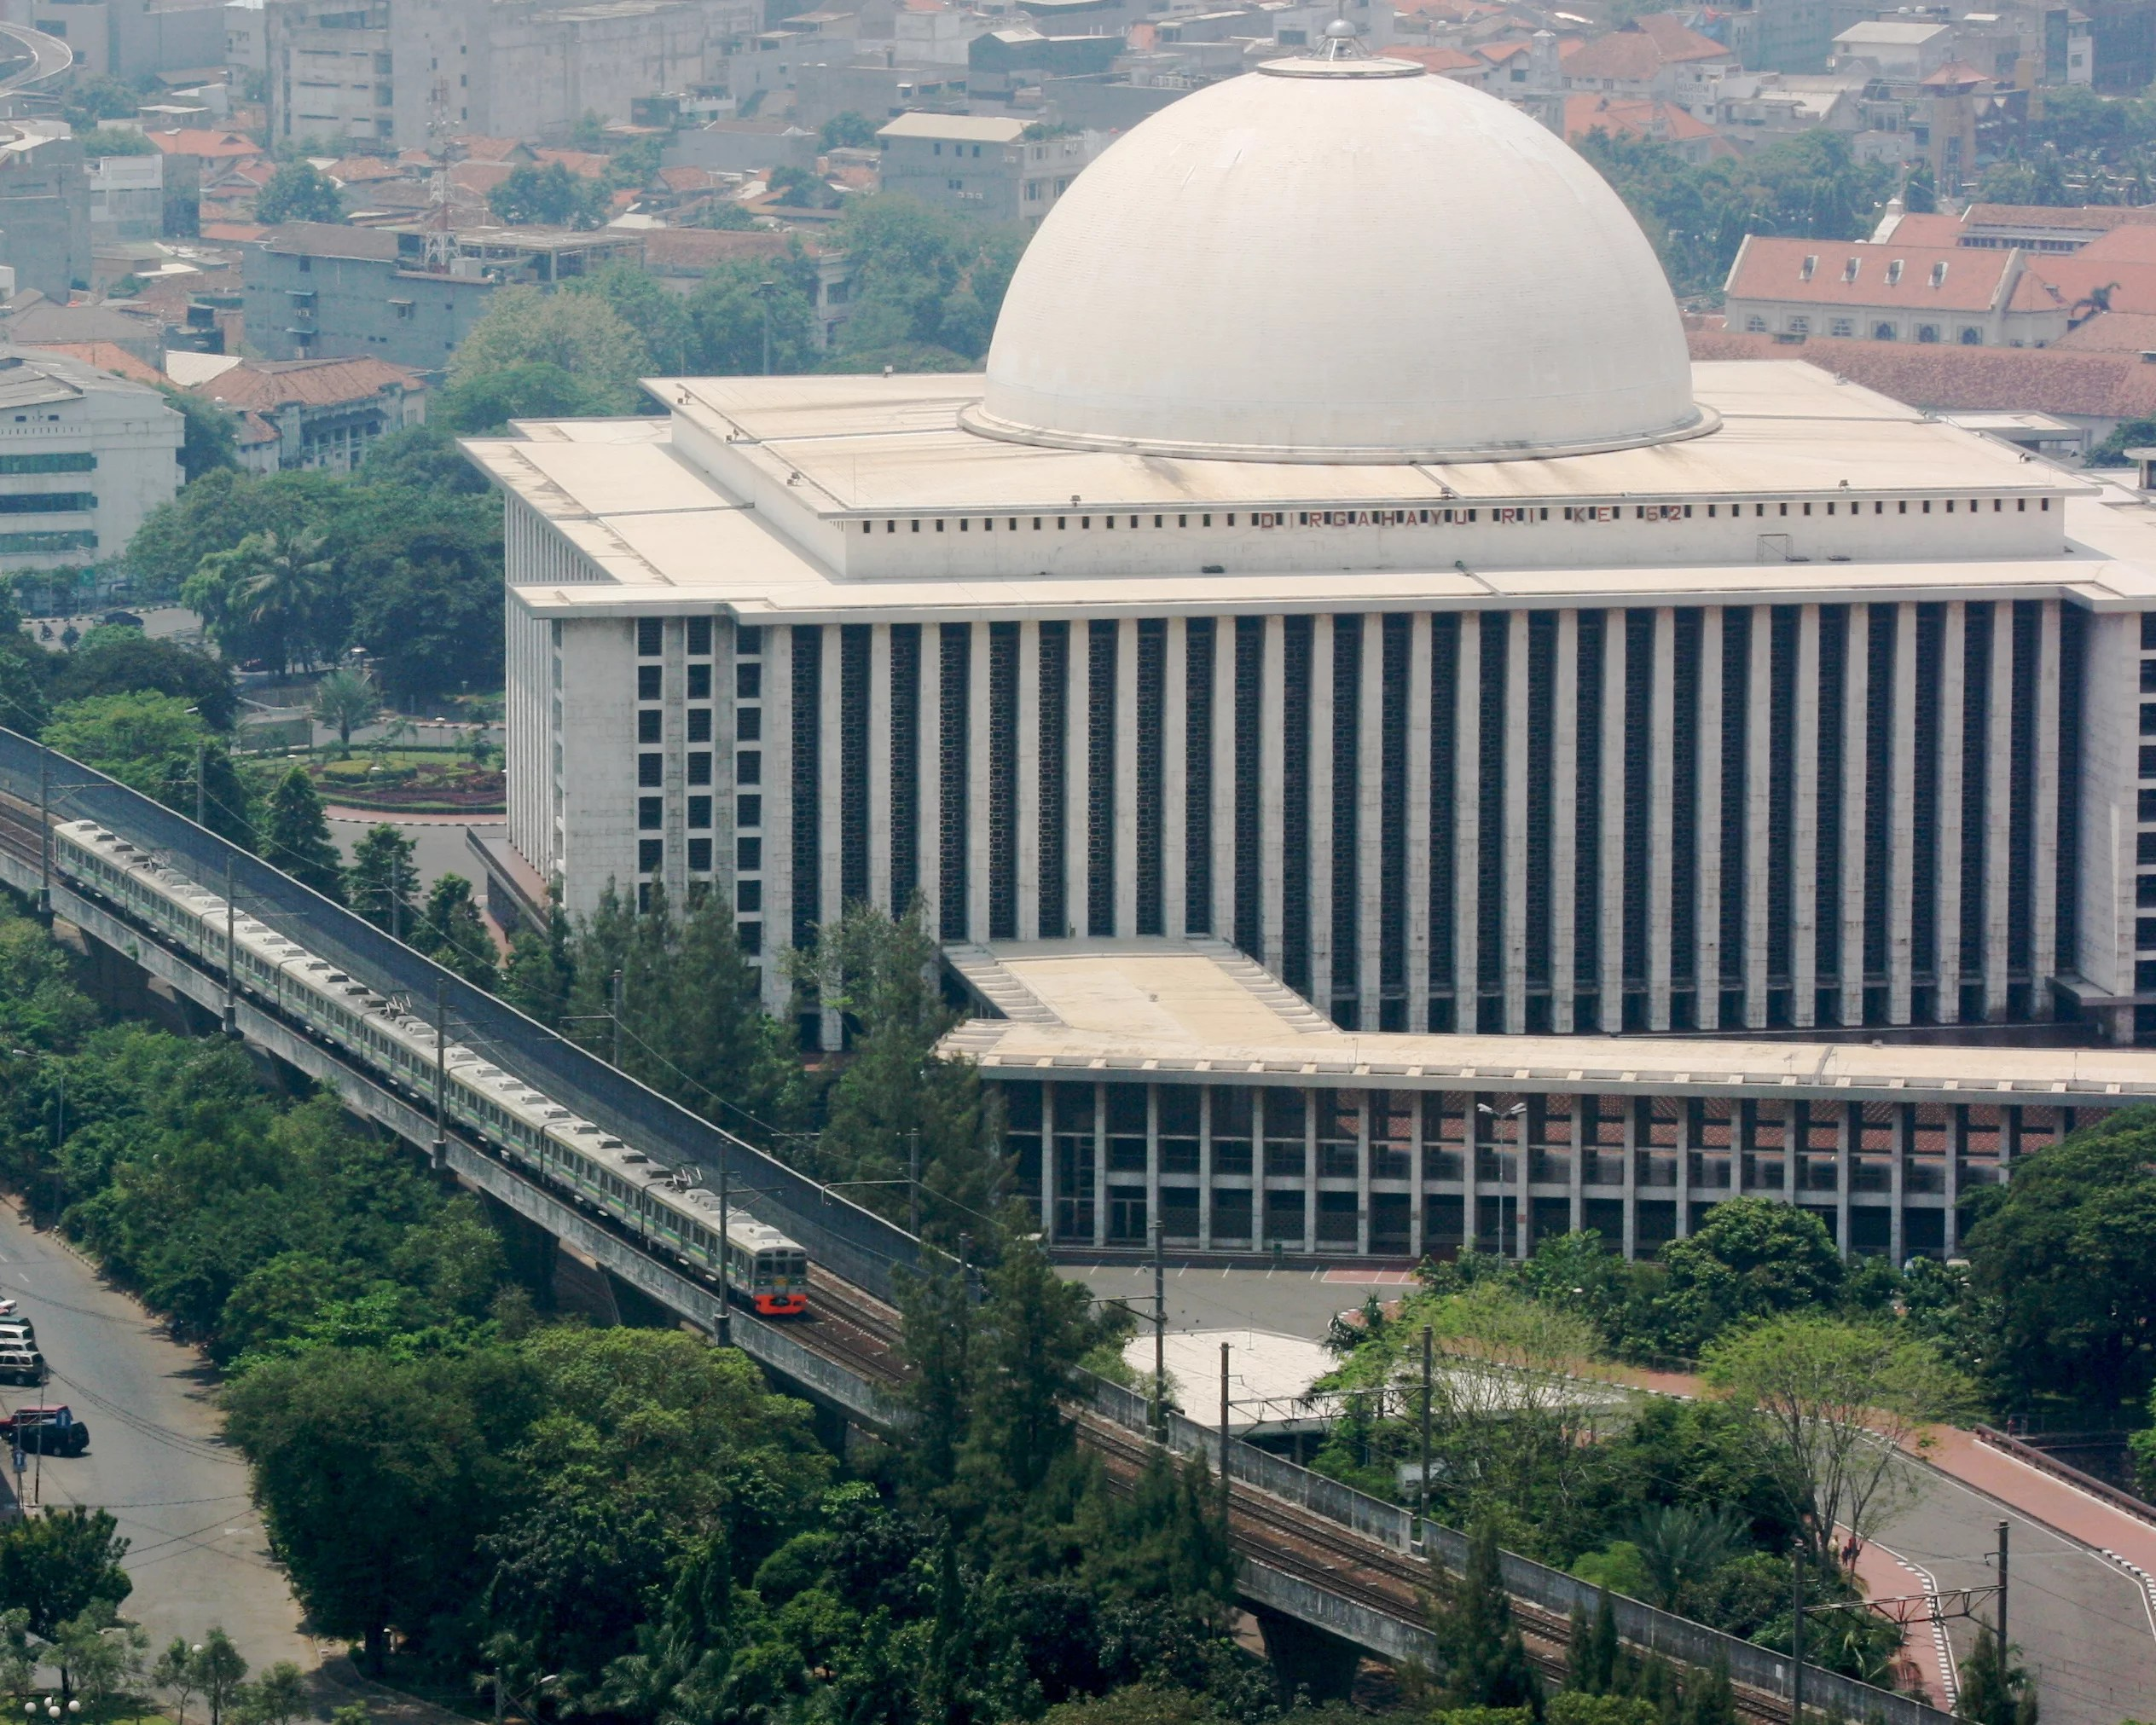 Train and Istiqlal Mosque, a really great place to see in Jakarta.